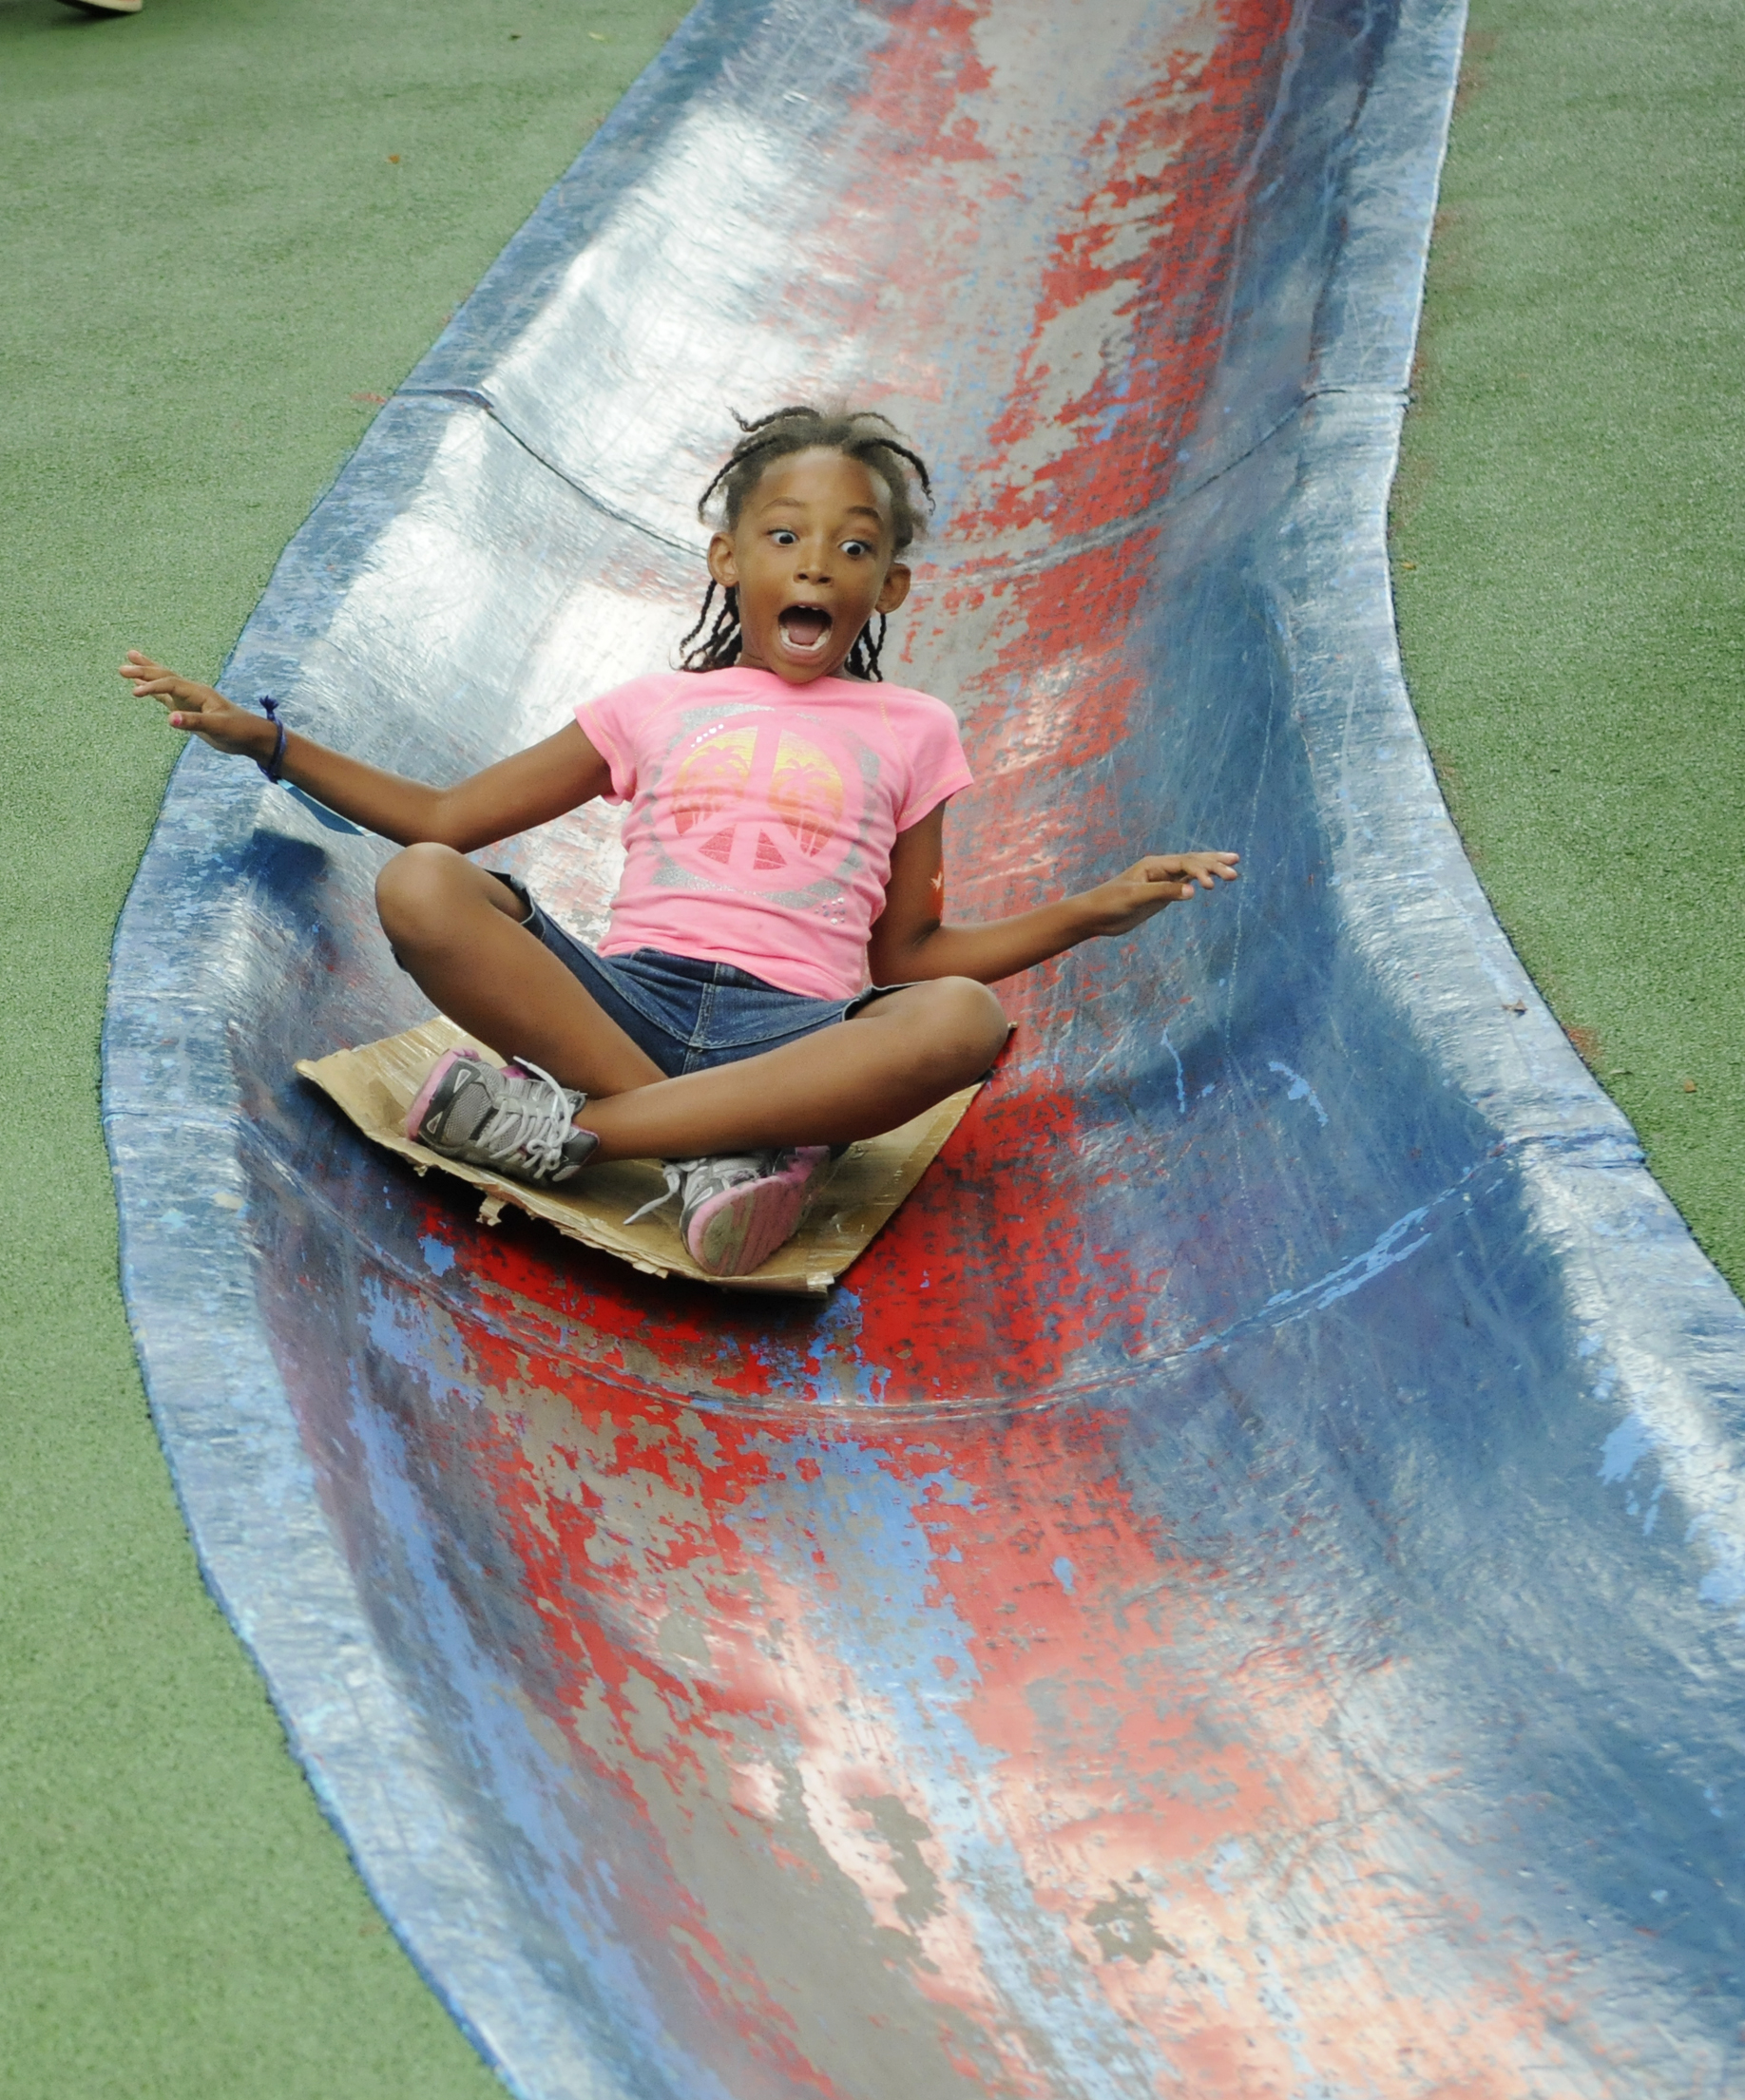 Ailani Mitchell of Homewood, goes down the blue slide at Blue Slide Playground in Frick Park. (Chris Kasprak/Post-Gazette)